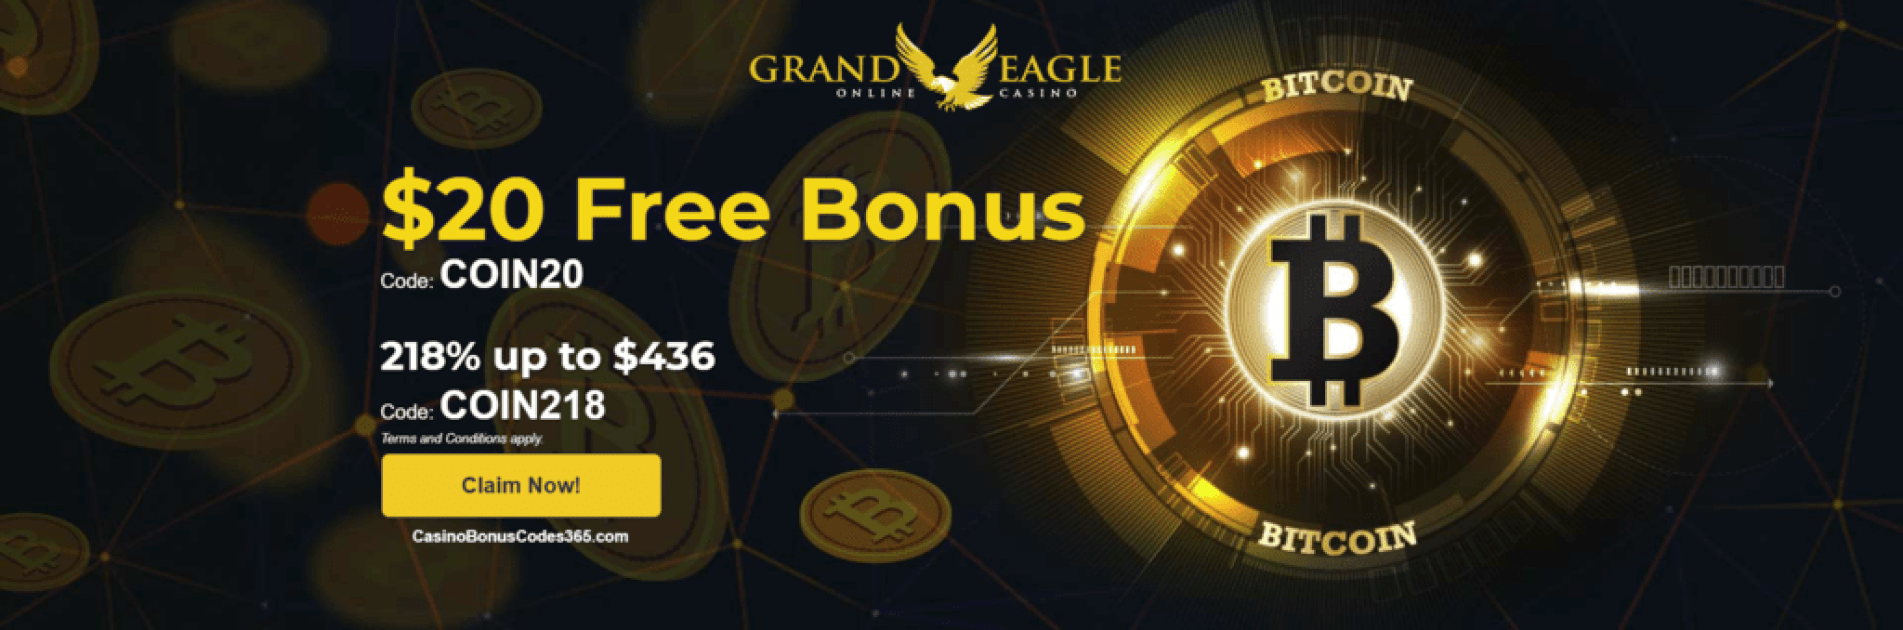 Grand Eagle Casino Special Bitcoin Promo Casino Bonus Codes 365